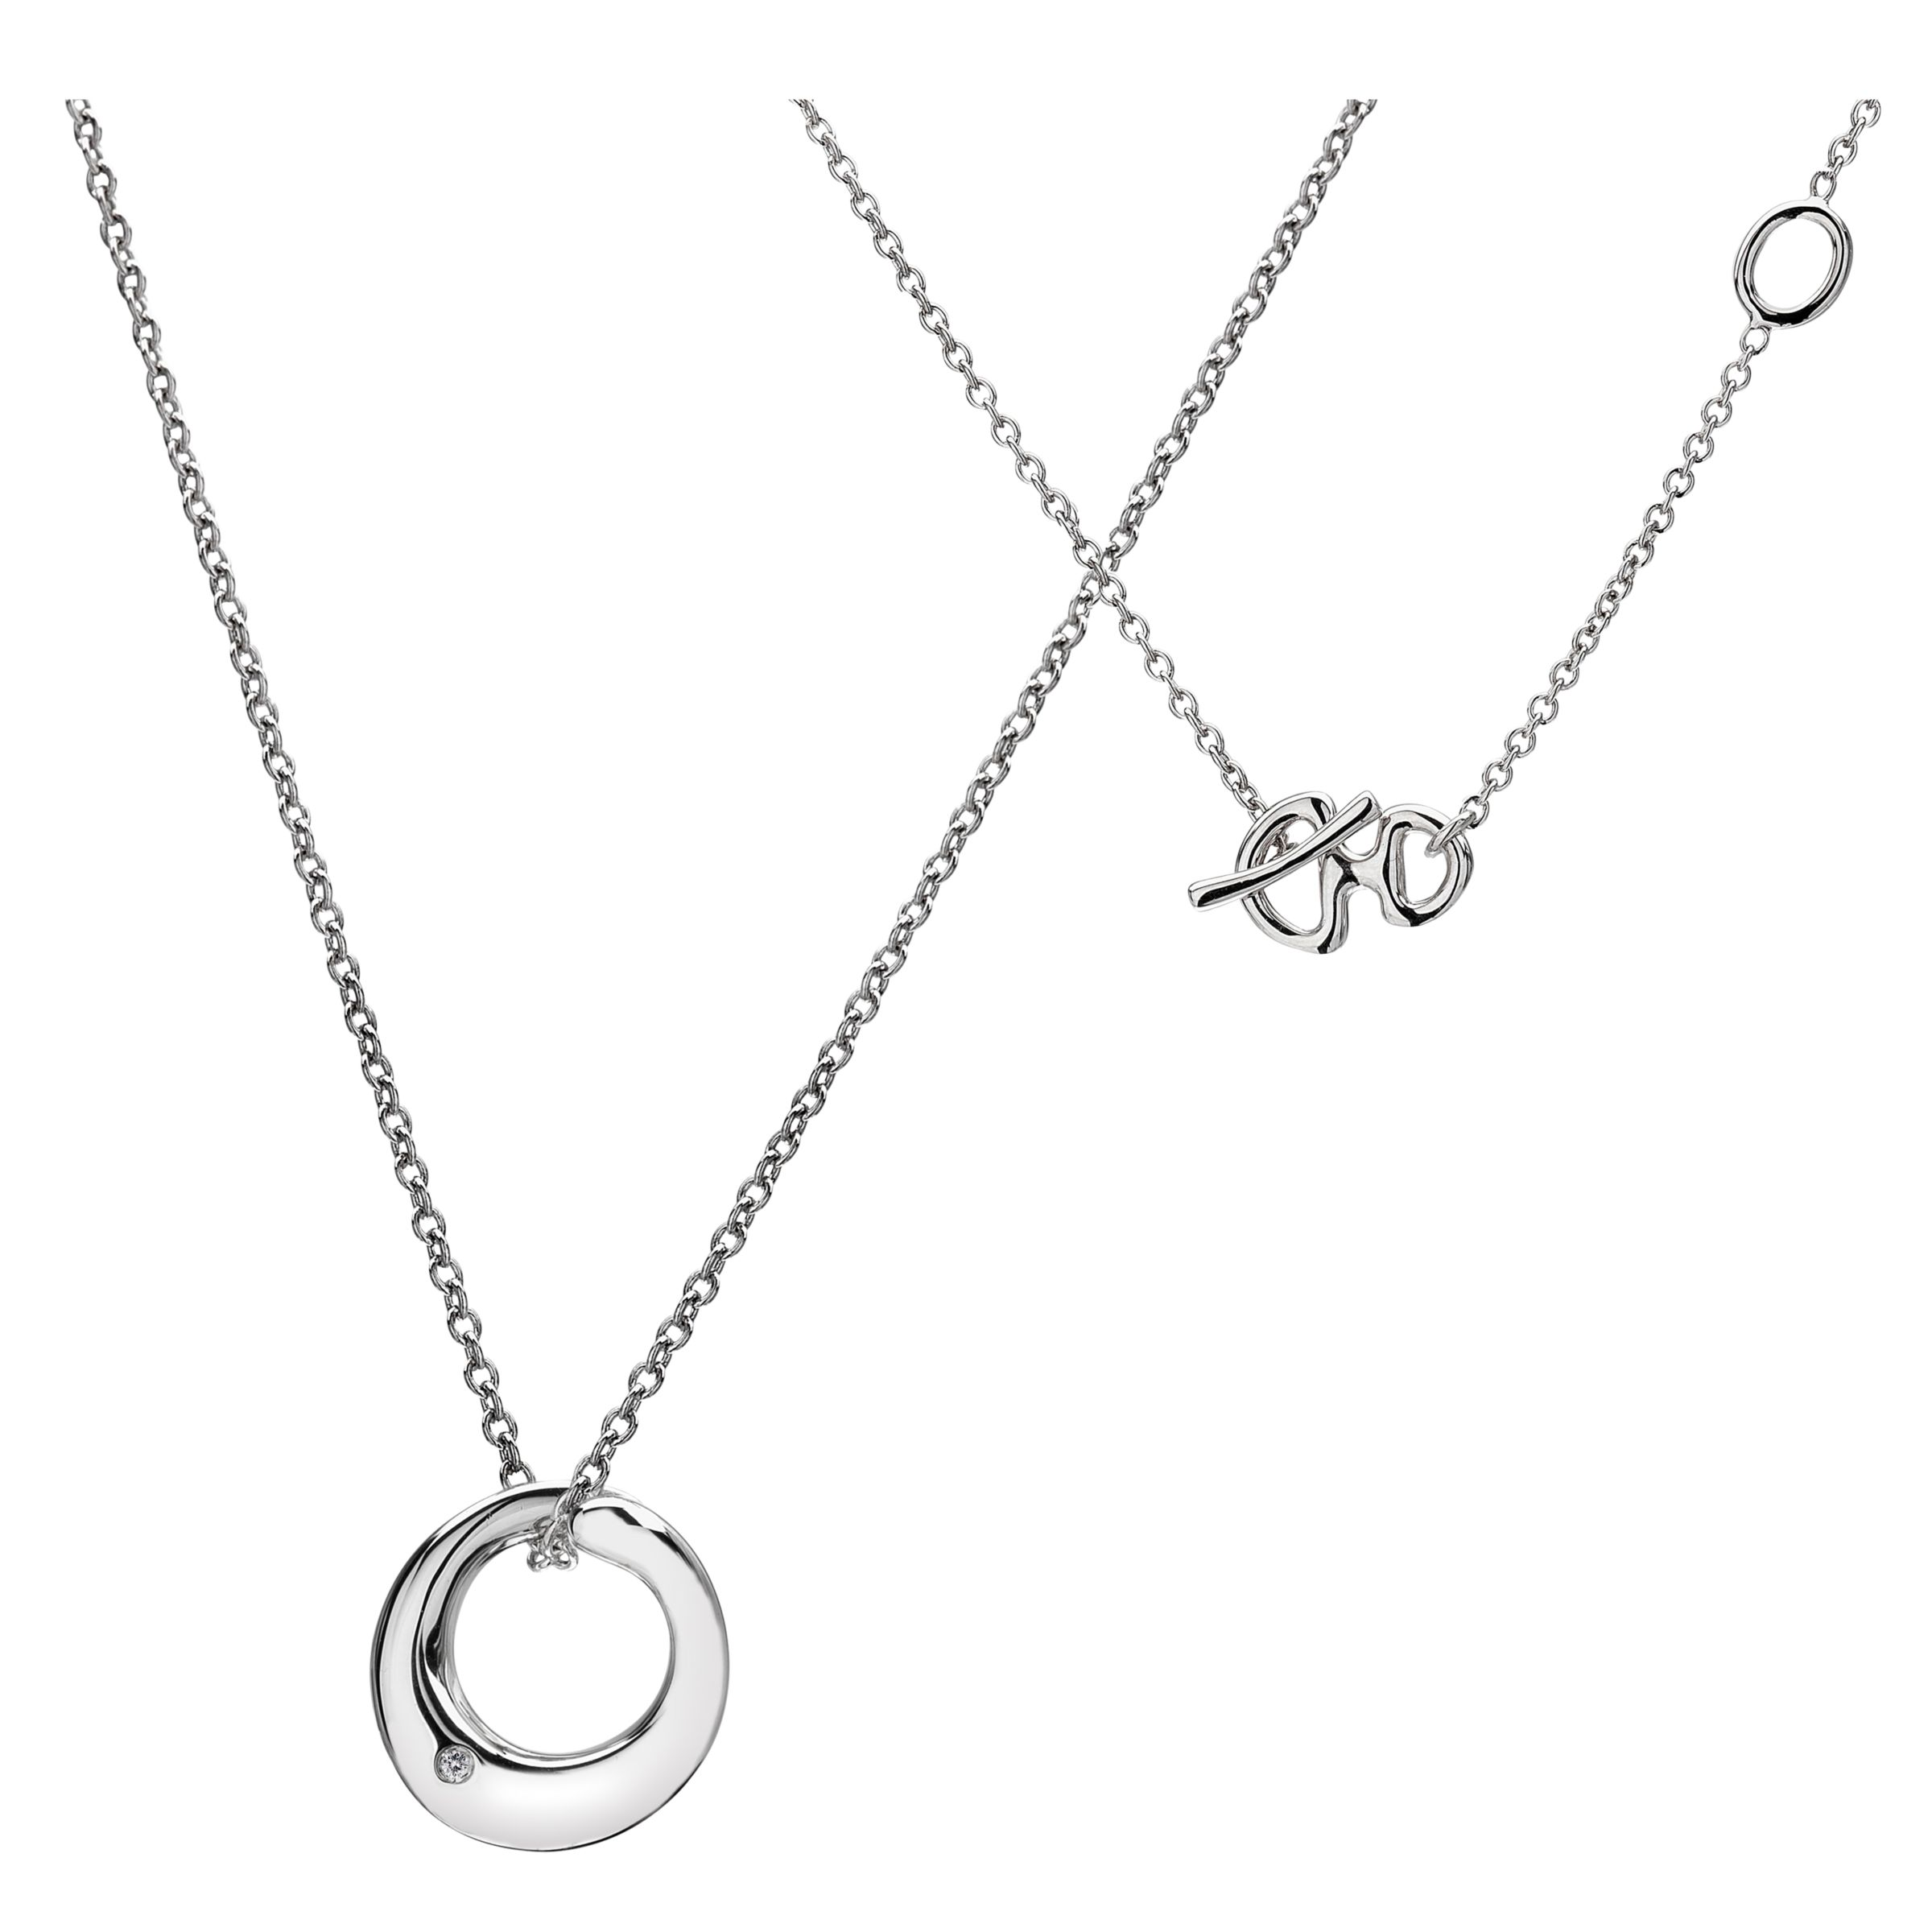 Hot Diamonds Eternal Mini Pendant Necklace